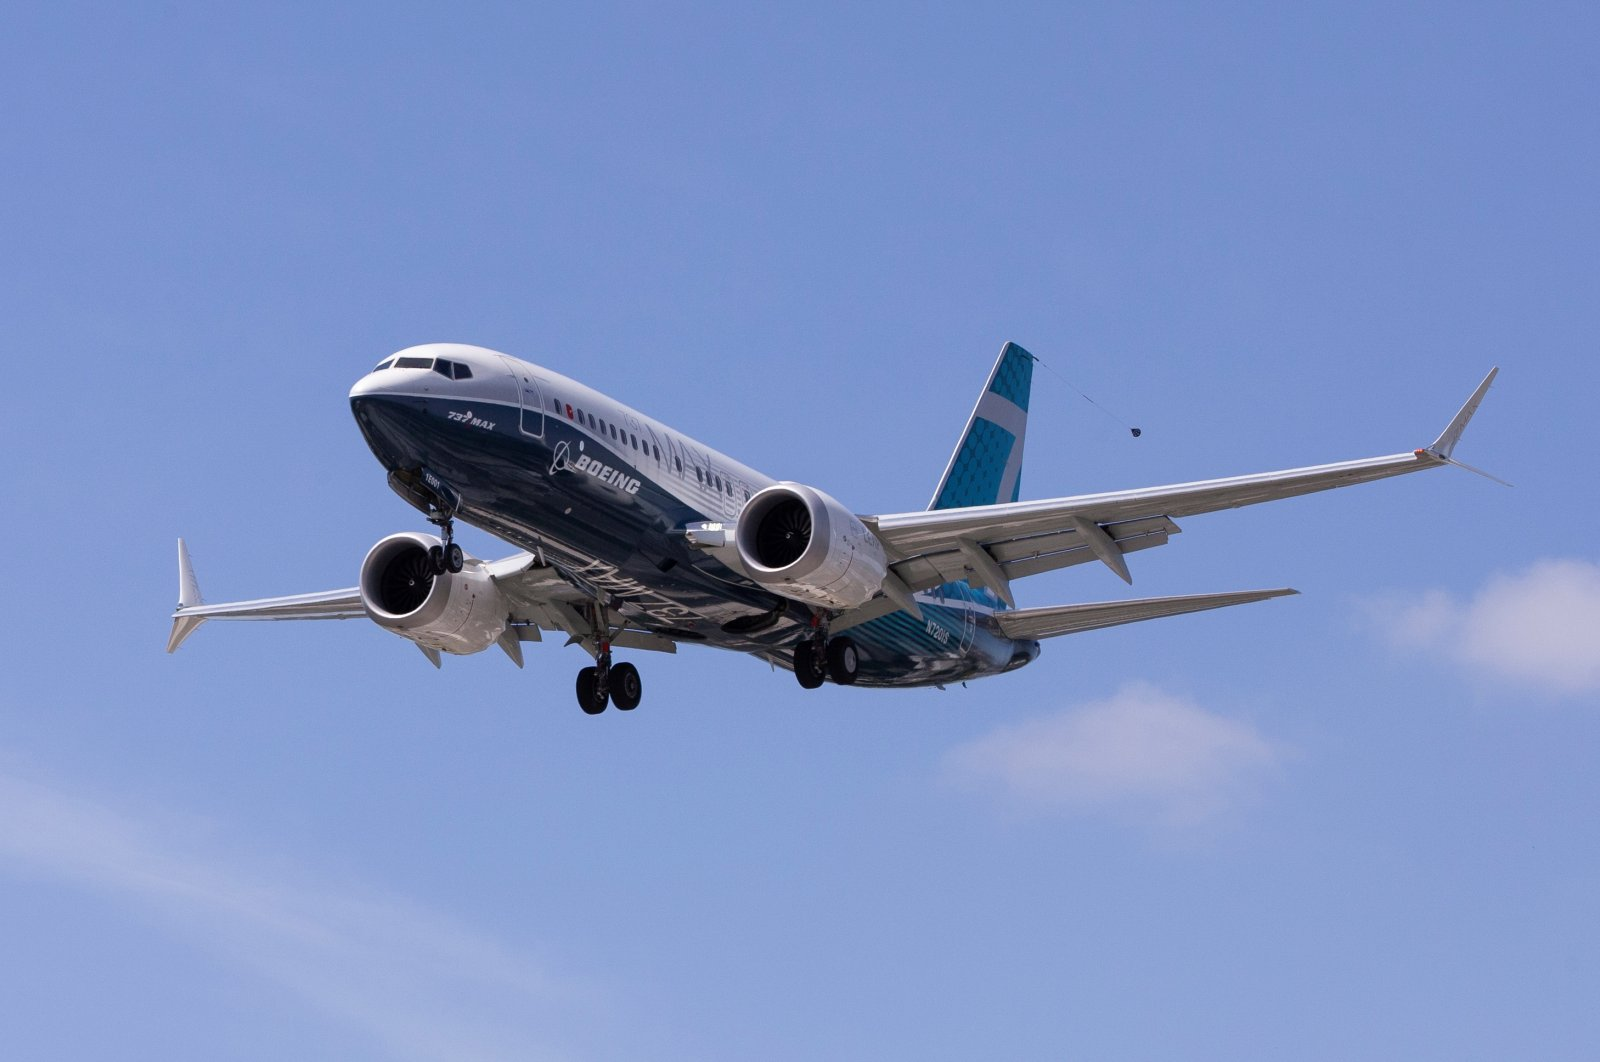 A Boeing 737 MAX airplane lands after a test flight at Boeing Field in Seattle, Washington, U.S. June 29, 2020. (Reuters Photo)